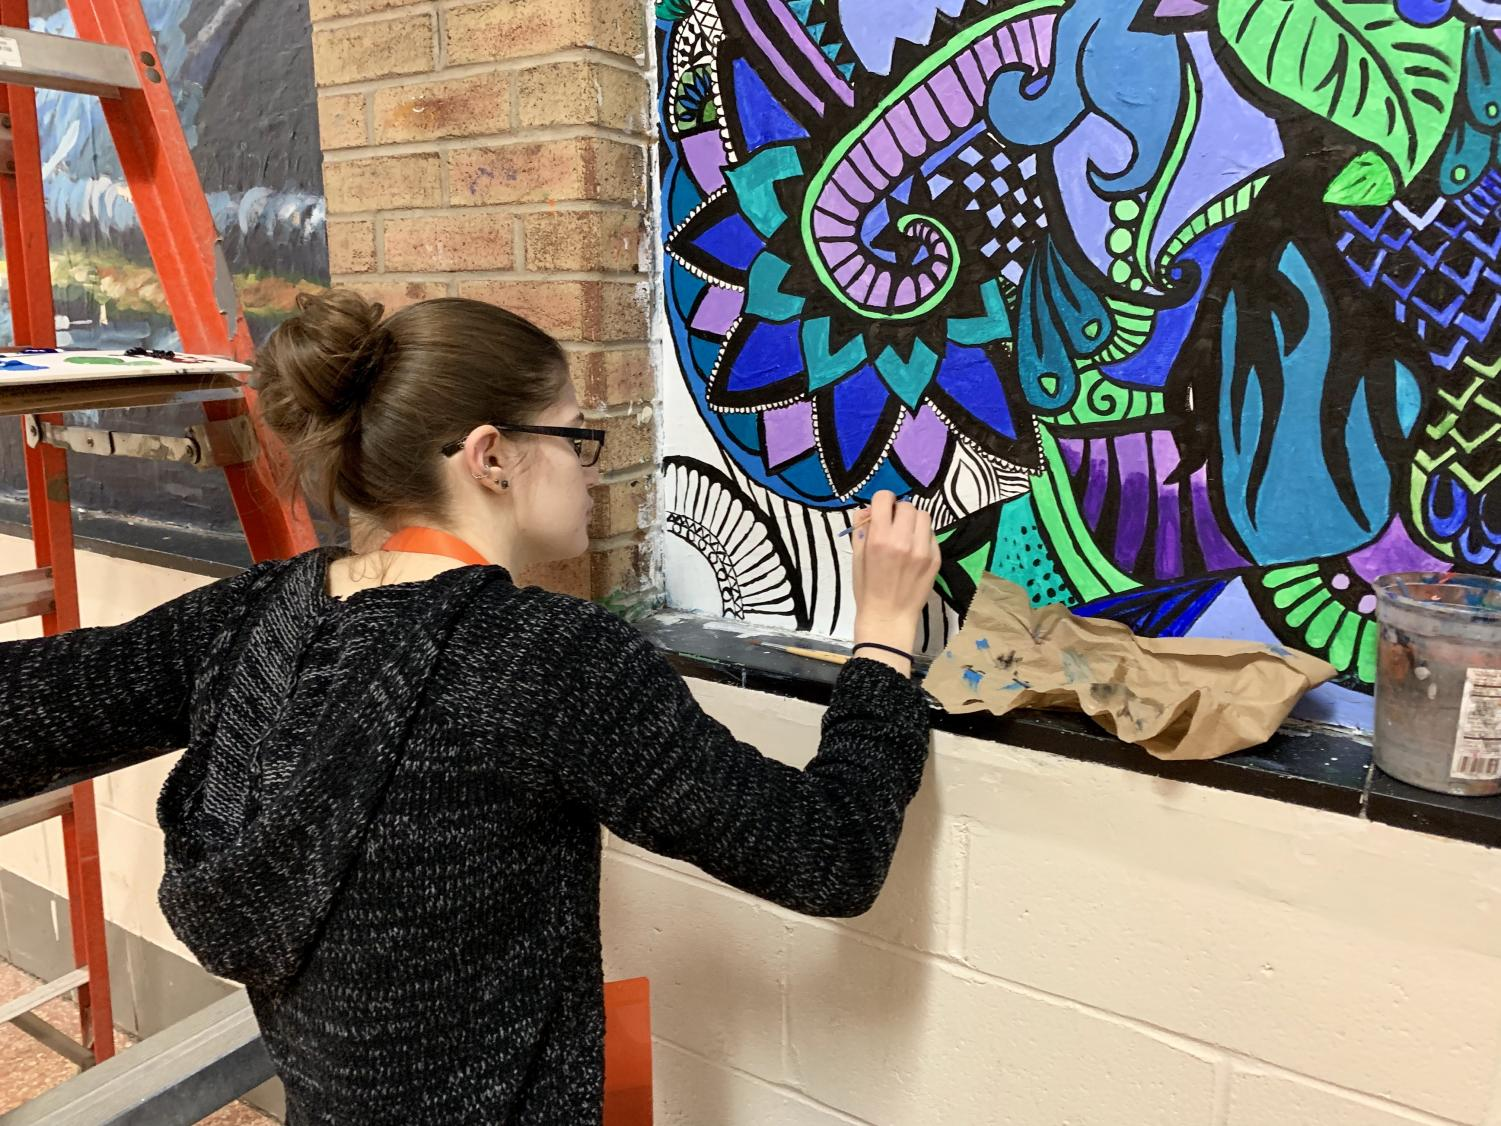 Alumna Allison Fiddner works on her mural next to the library Monday, Dec. 10. She began the mural last year and returned this year to put on the finishing touches.